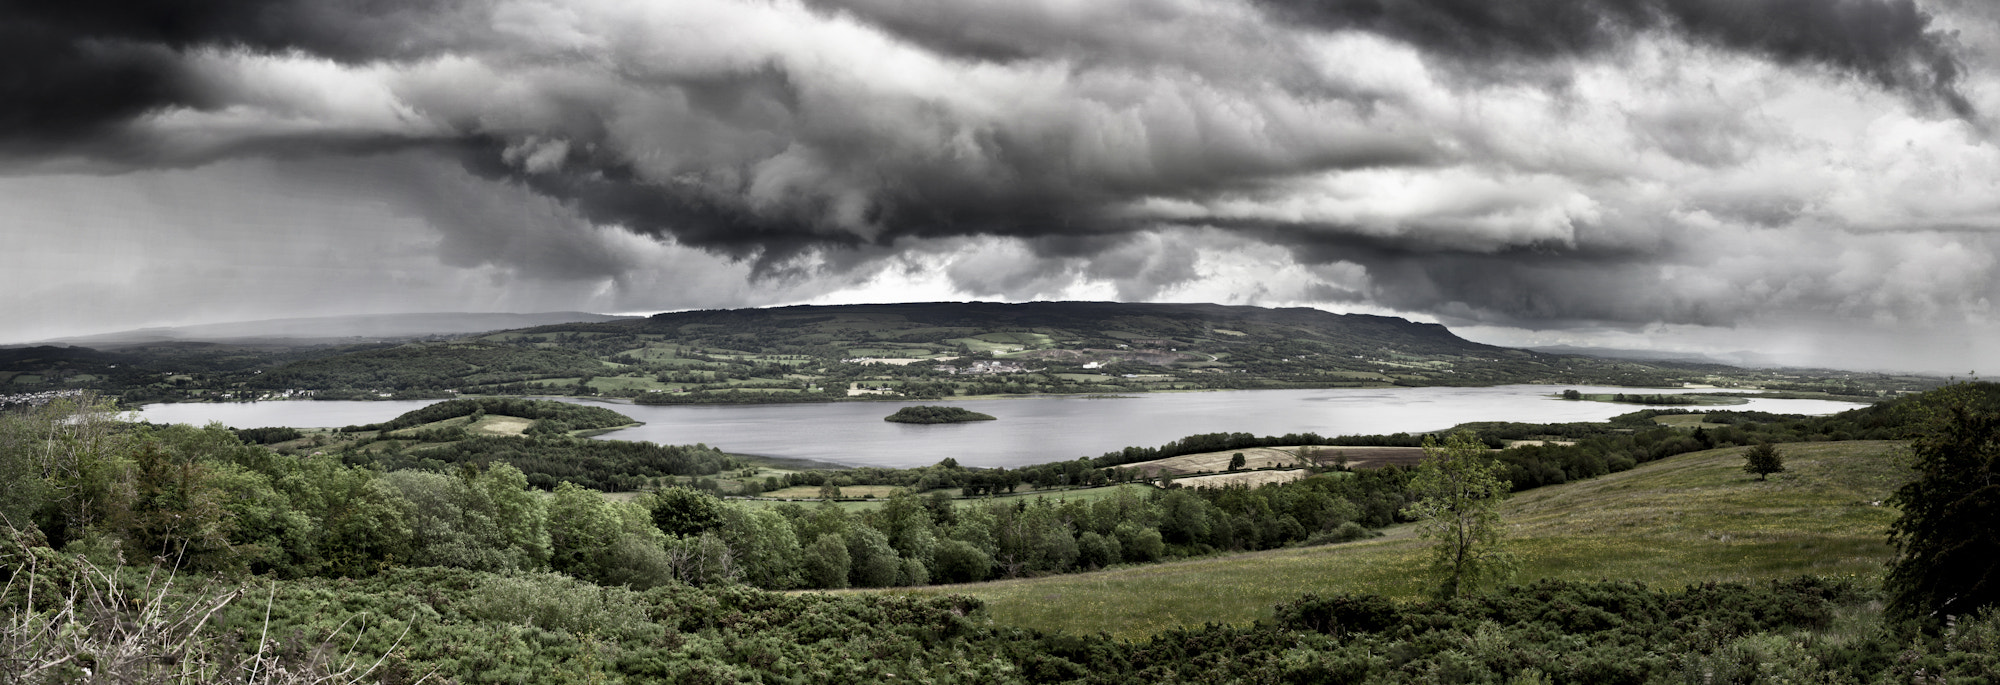 Photograph Marlbank Viewpoint Panoramic by Stephen Lyons on 500px